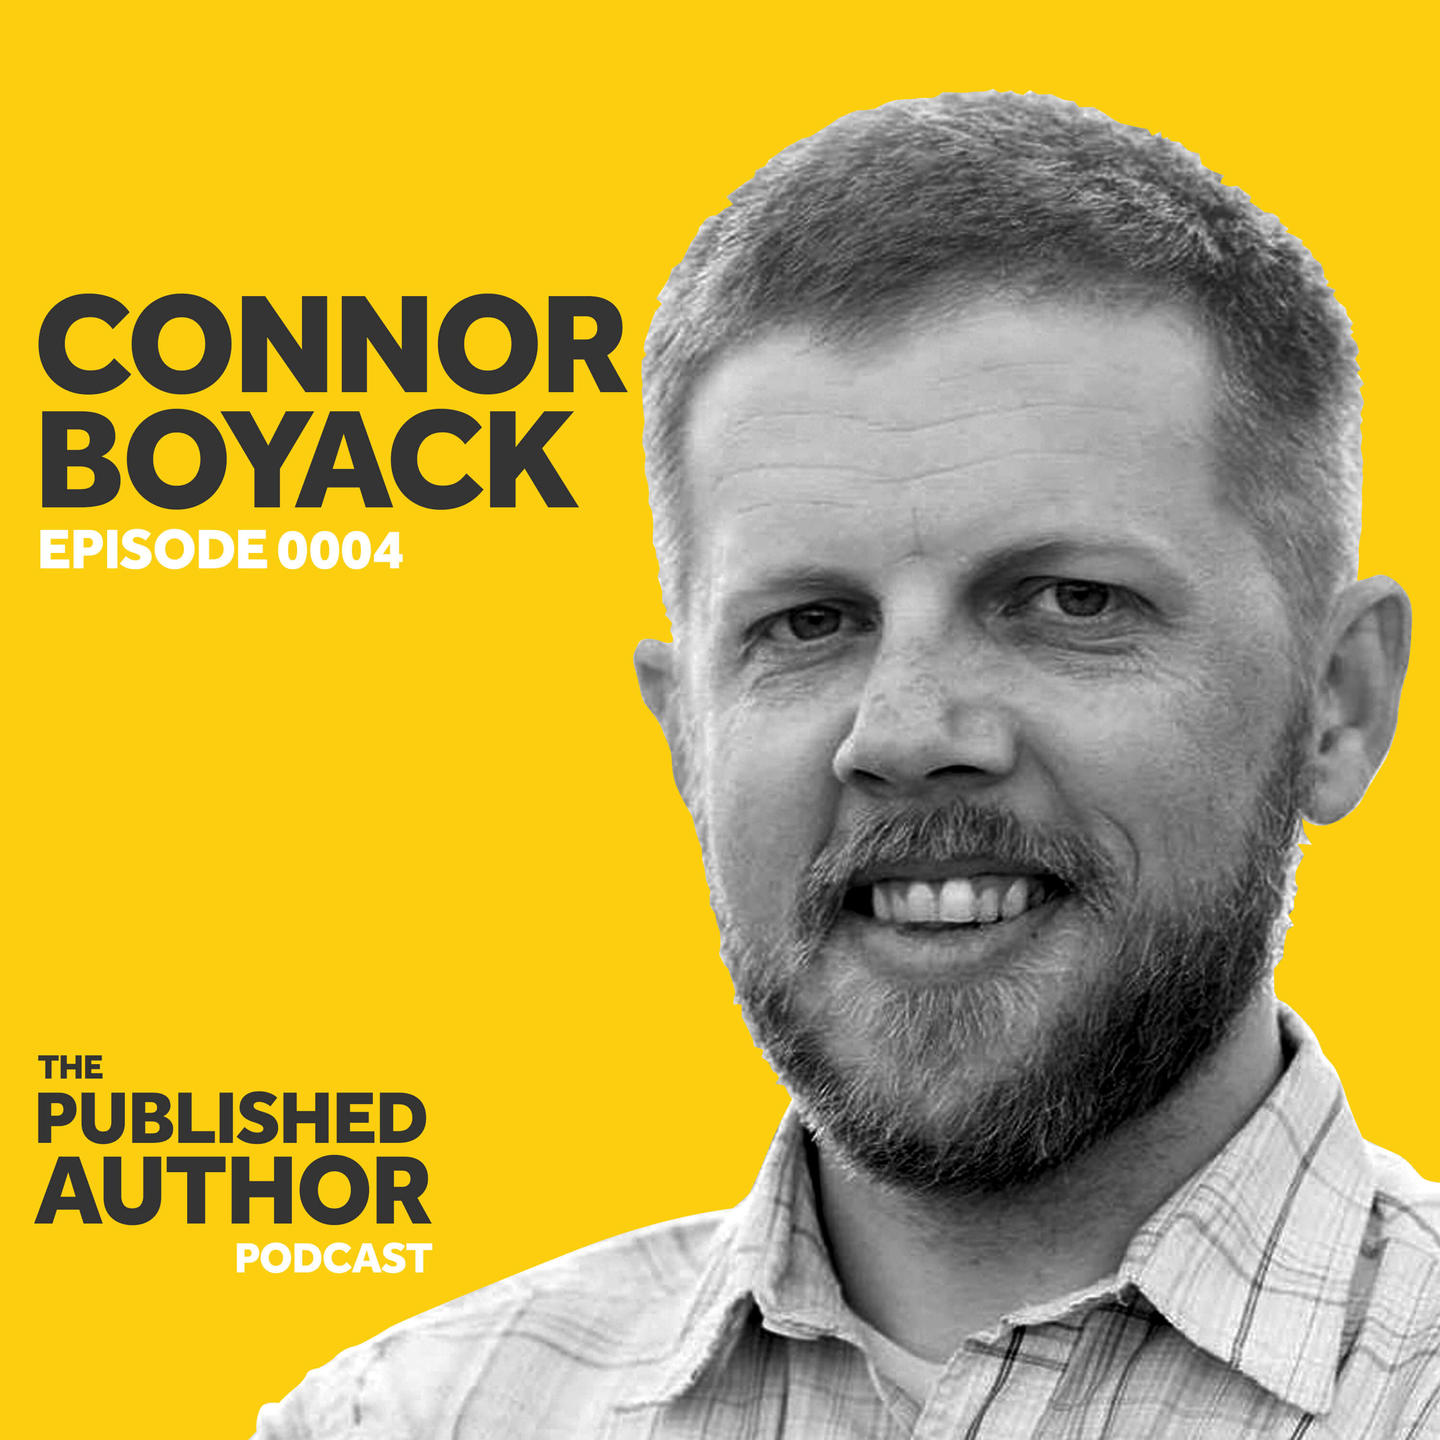 The Published Author Podcast - Episode 0004